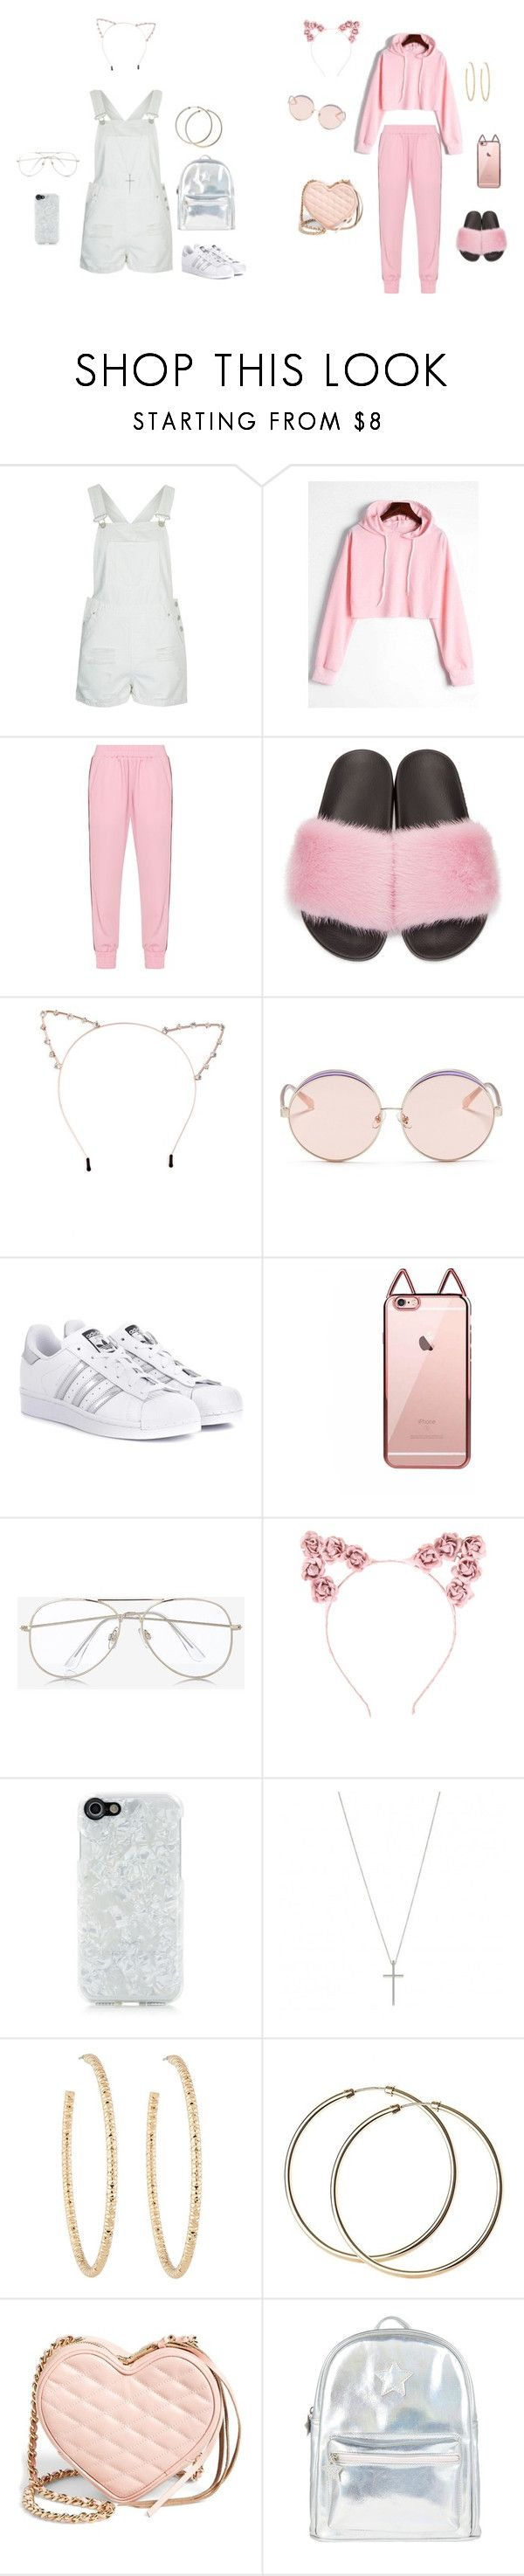 """school outfit and mall outfit"" by bhadbitch15 on Polyvore featuring Topshop, Mother of Pearl, Givenchy, Cara, N°21, adidas Originals, Express, Hot Topic, Candywirez and Berry"